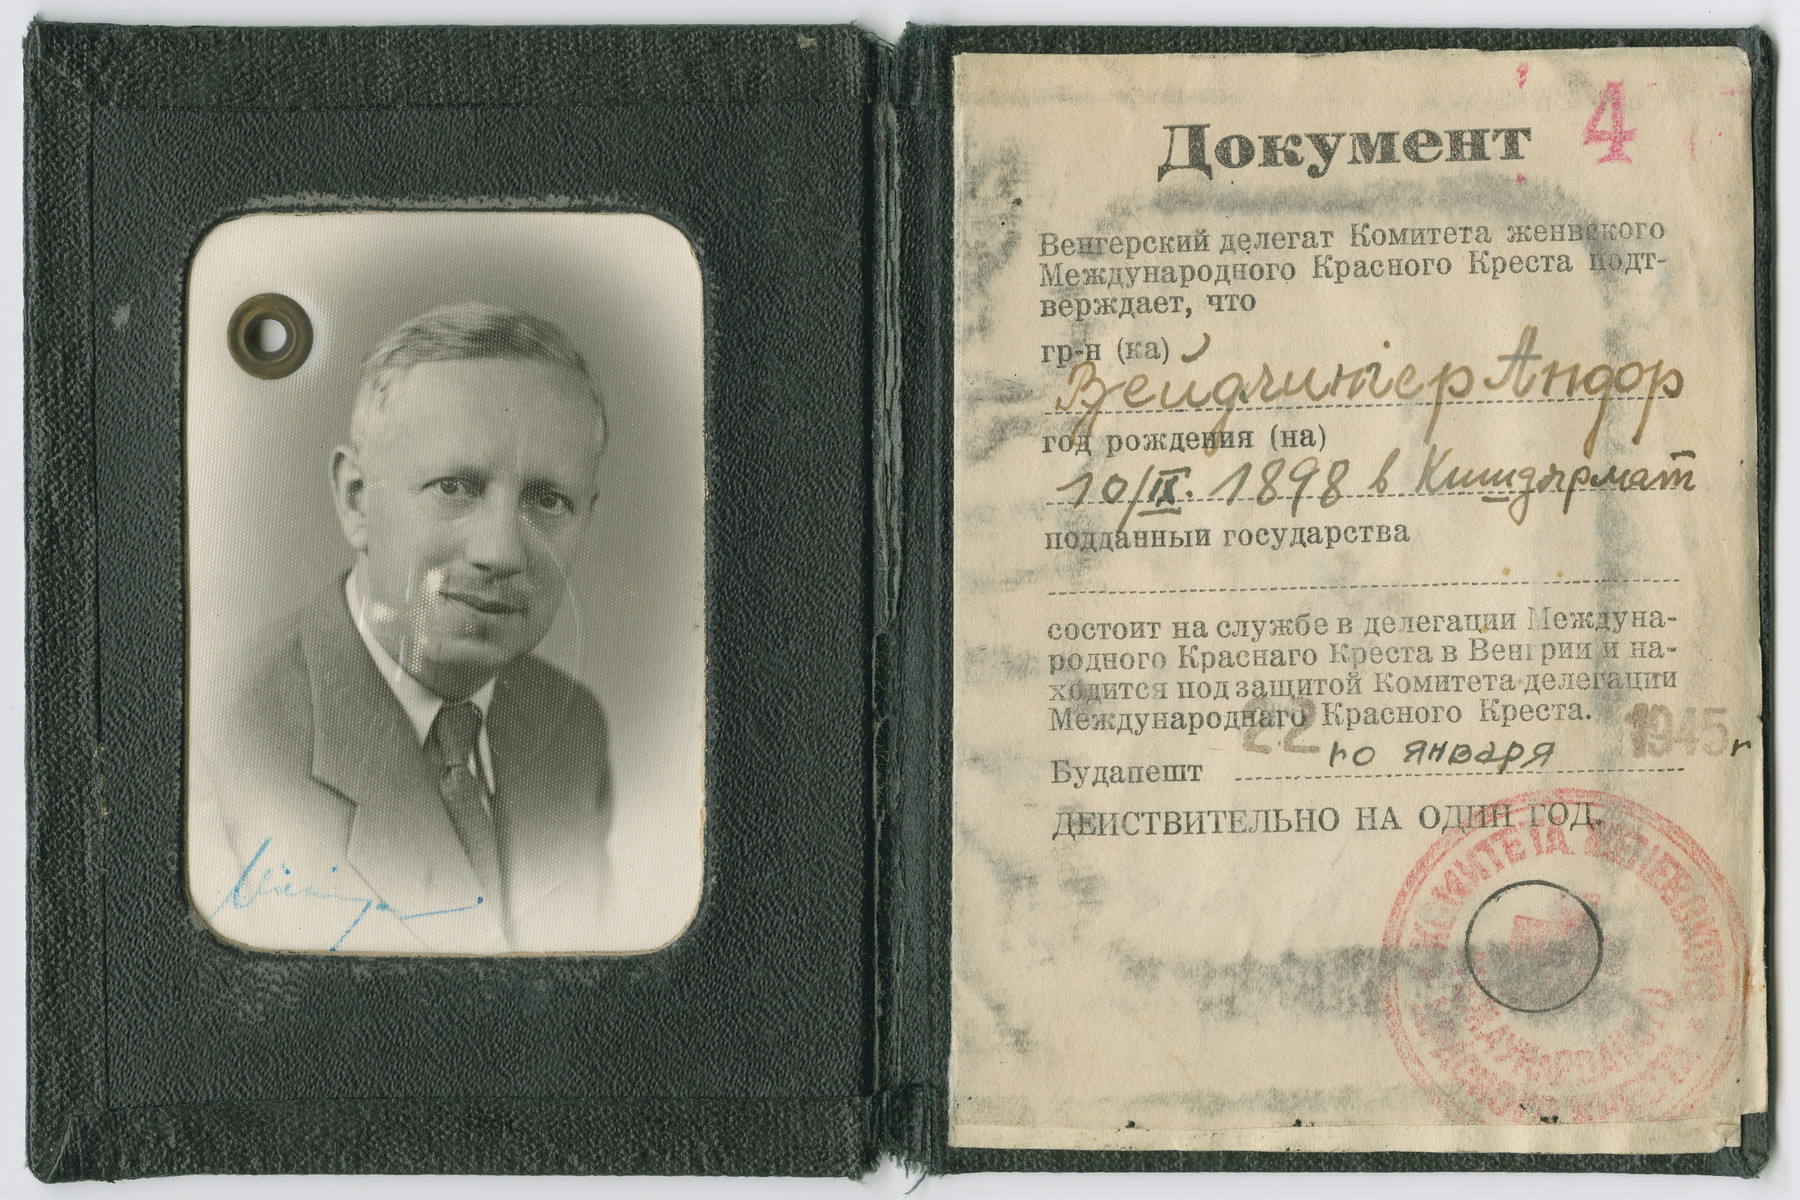 Identification card initially issued to Andor Weidlinger by the Swiss Red Cross and then reissued by Soviet authorities.